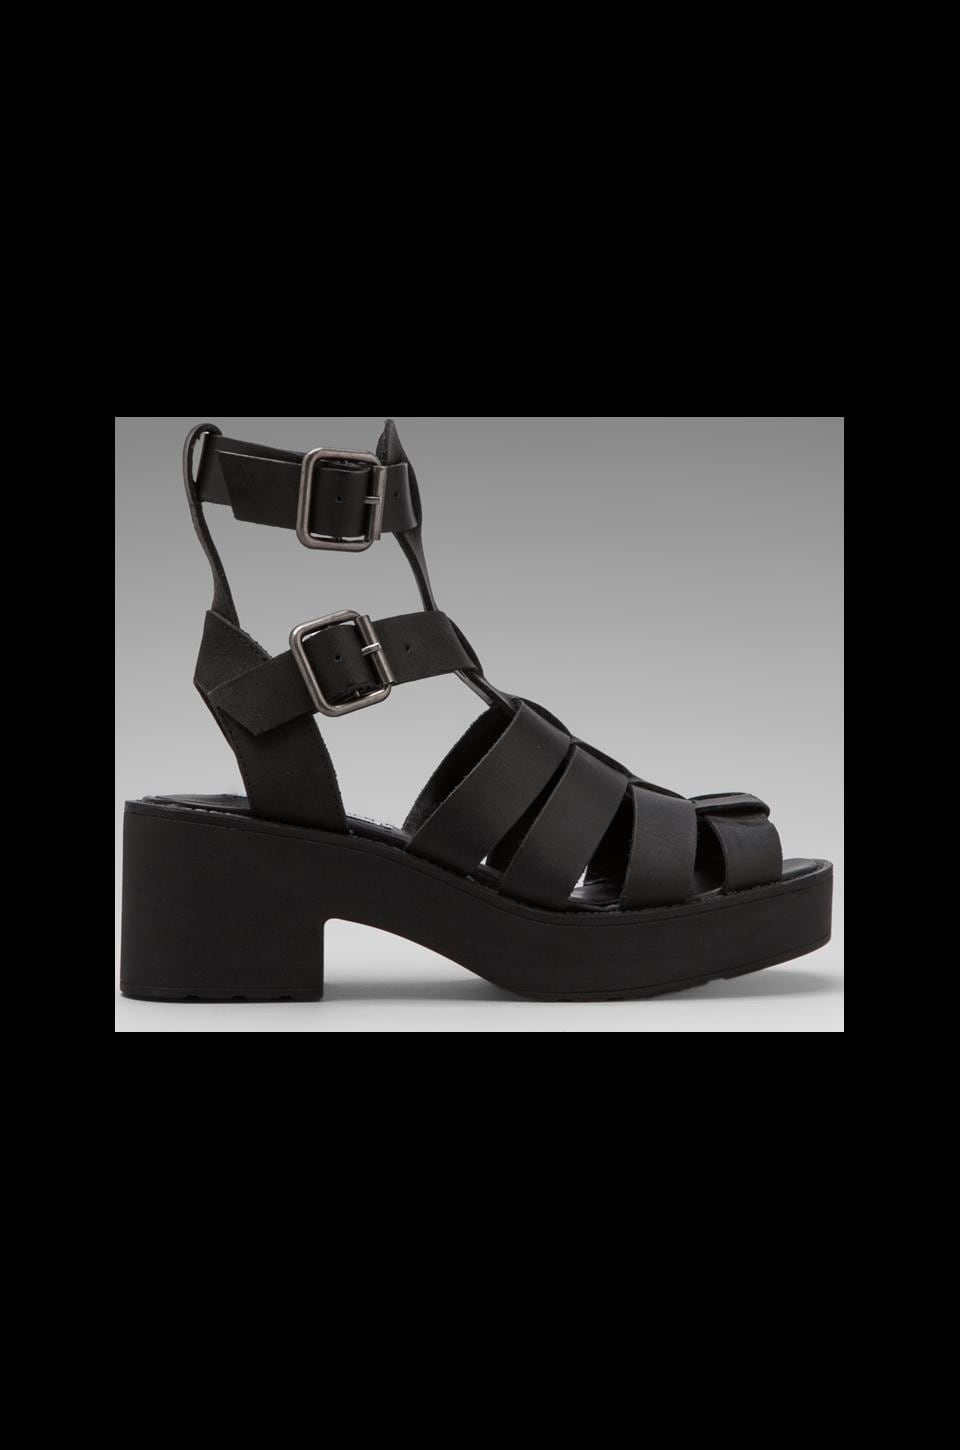 Steve Madden Schoolz Sandal in Black Leather